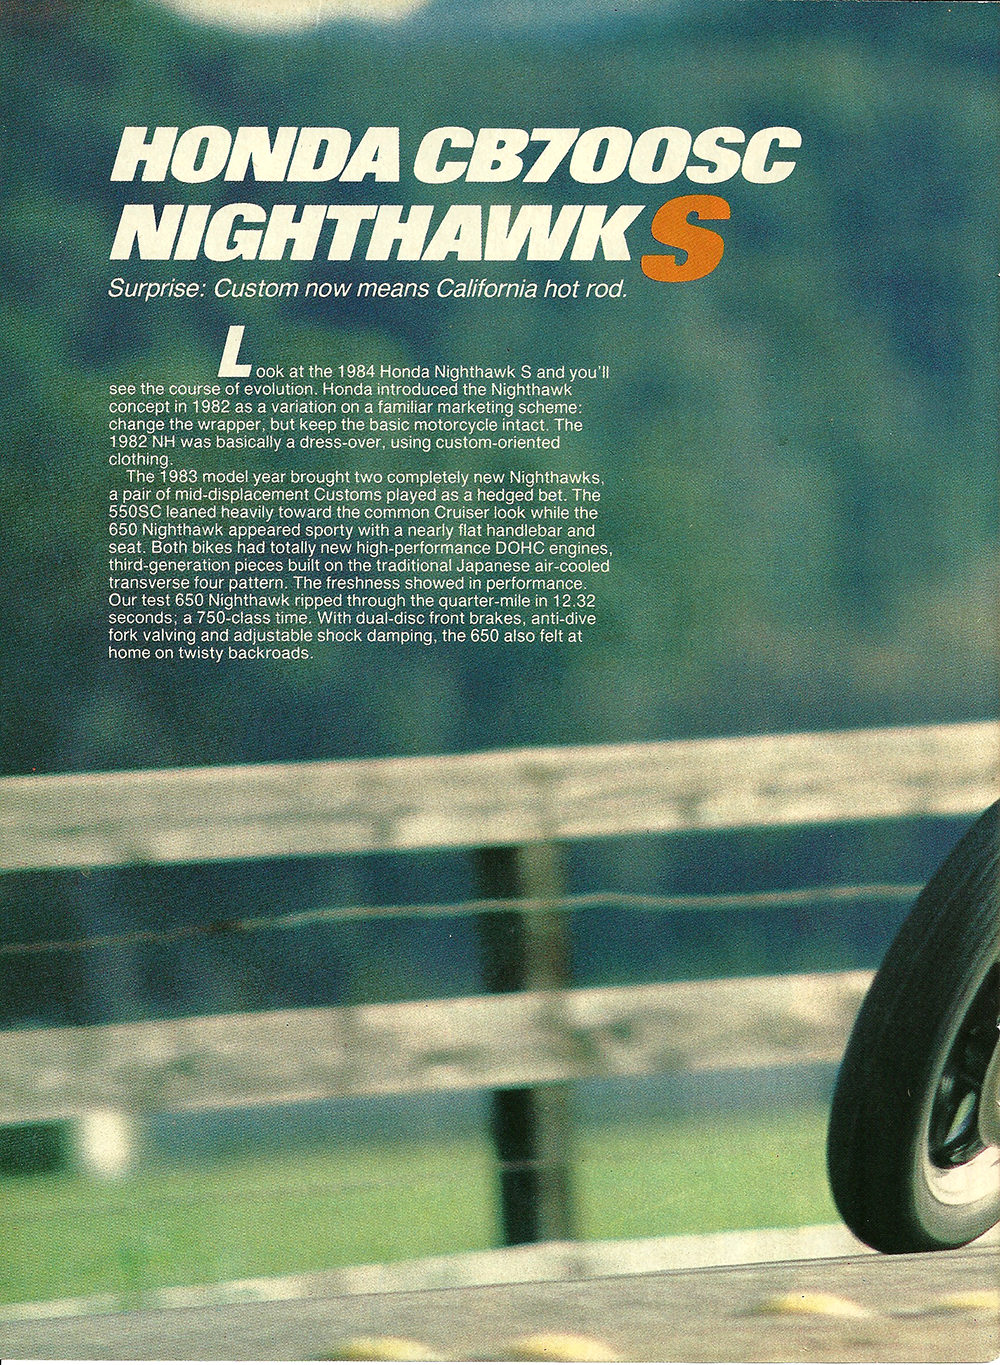 1984 Honda CB700SC Nighthawk S road test 1.jpg